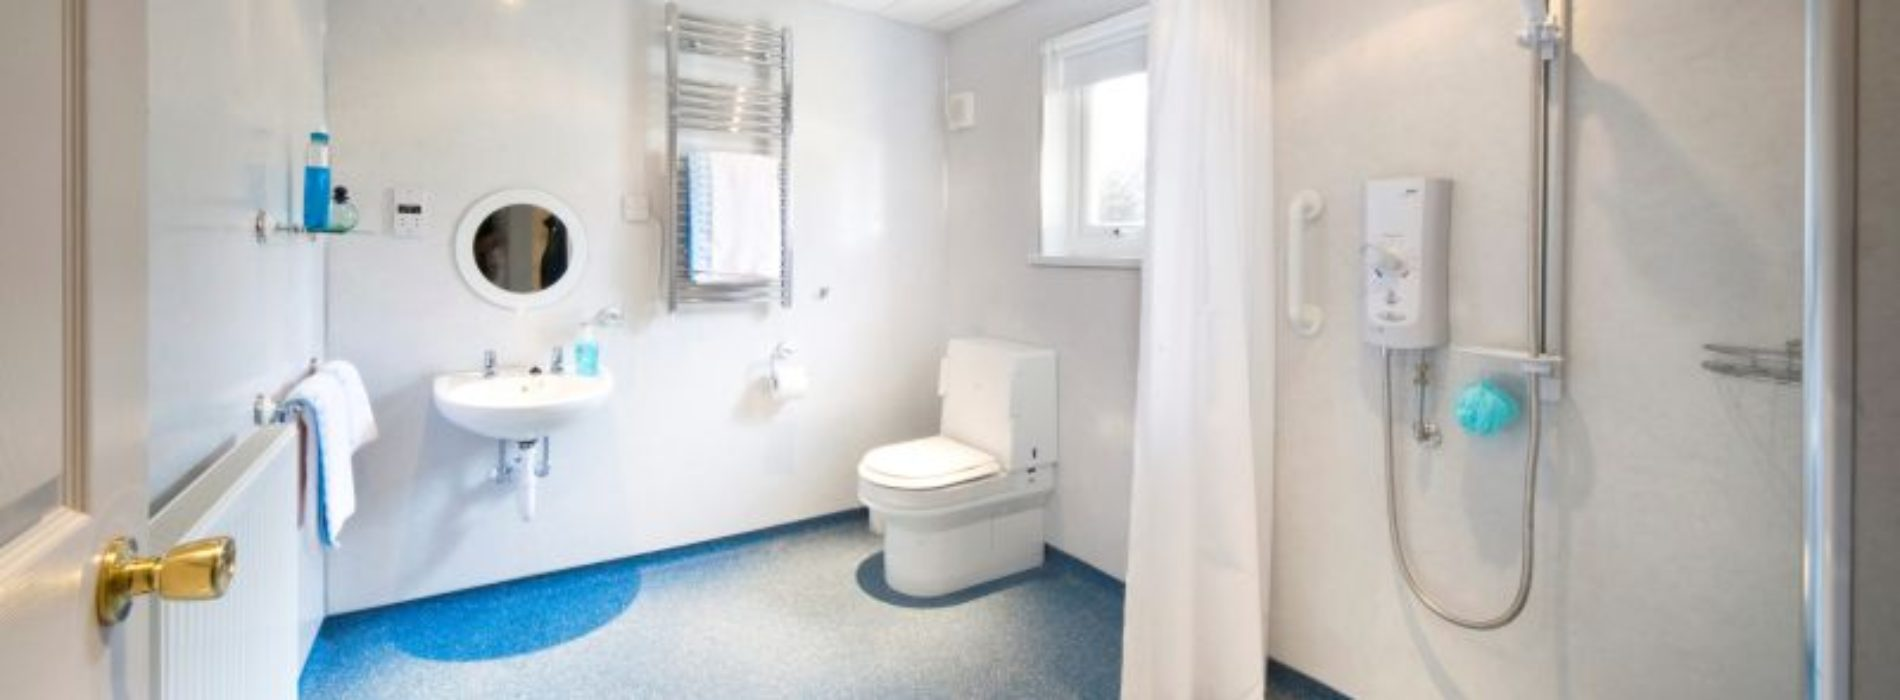 Top tips on how to make your bathroom accessible